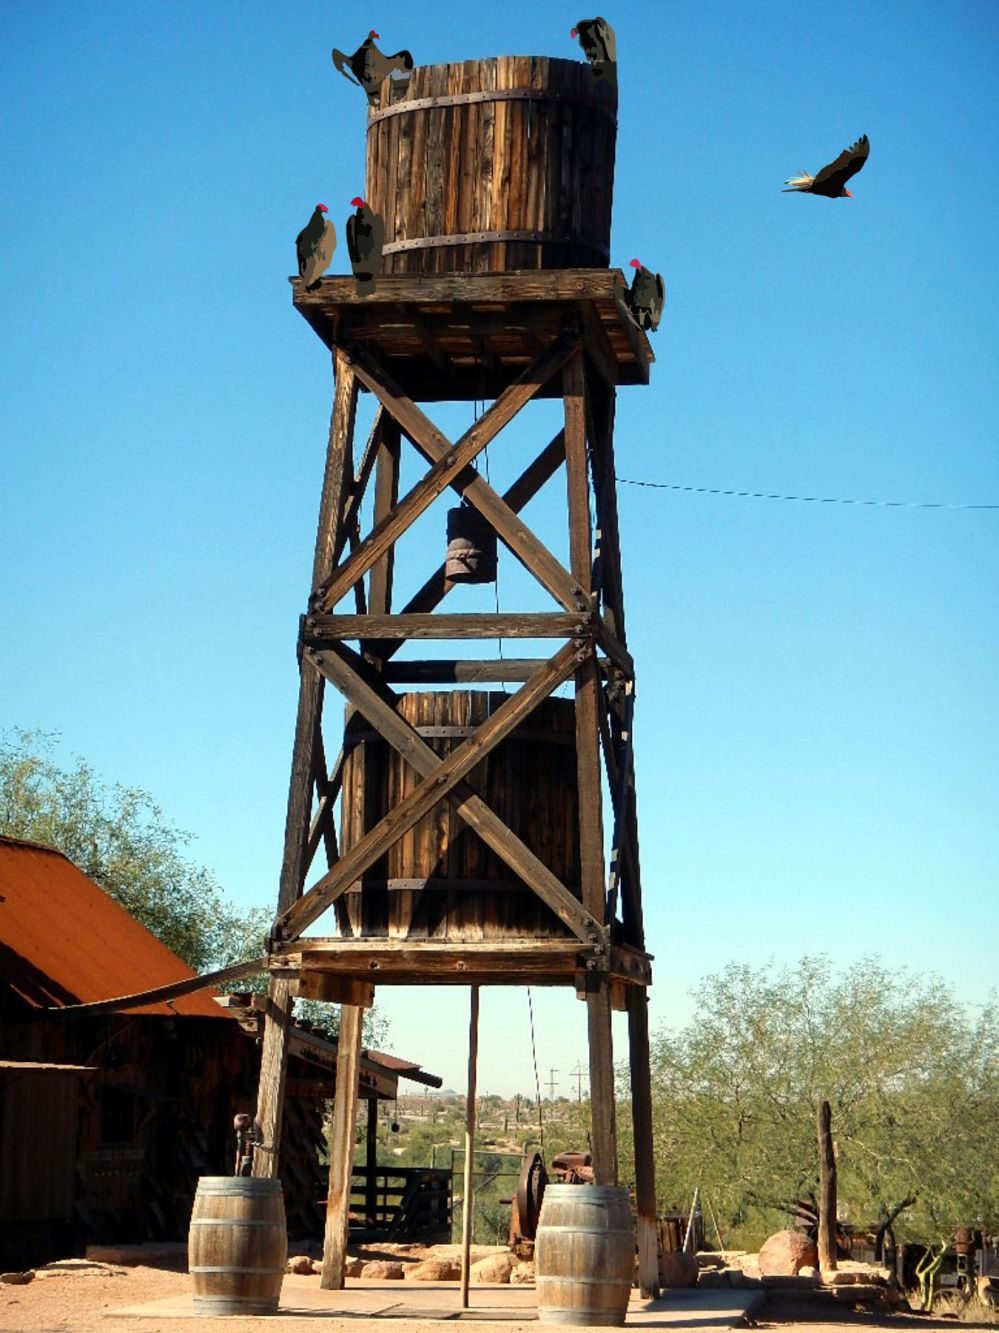 goldfield ghosttown water tower and vultures